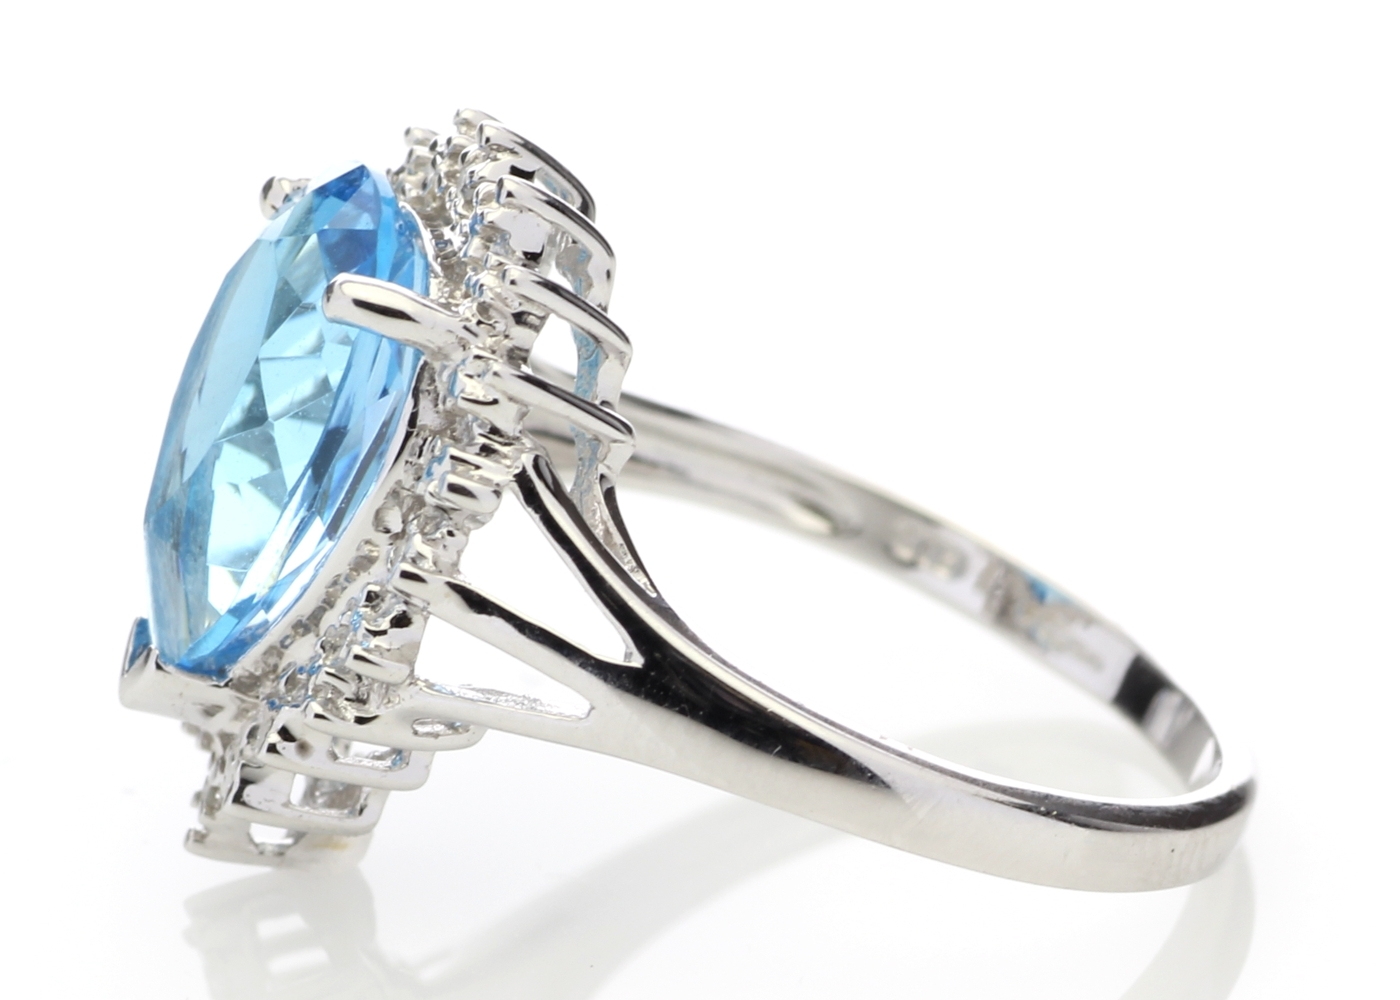 9ct White Gold Diamond And Blue Topaz Ring - Image 3 of 6